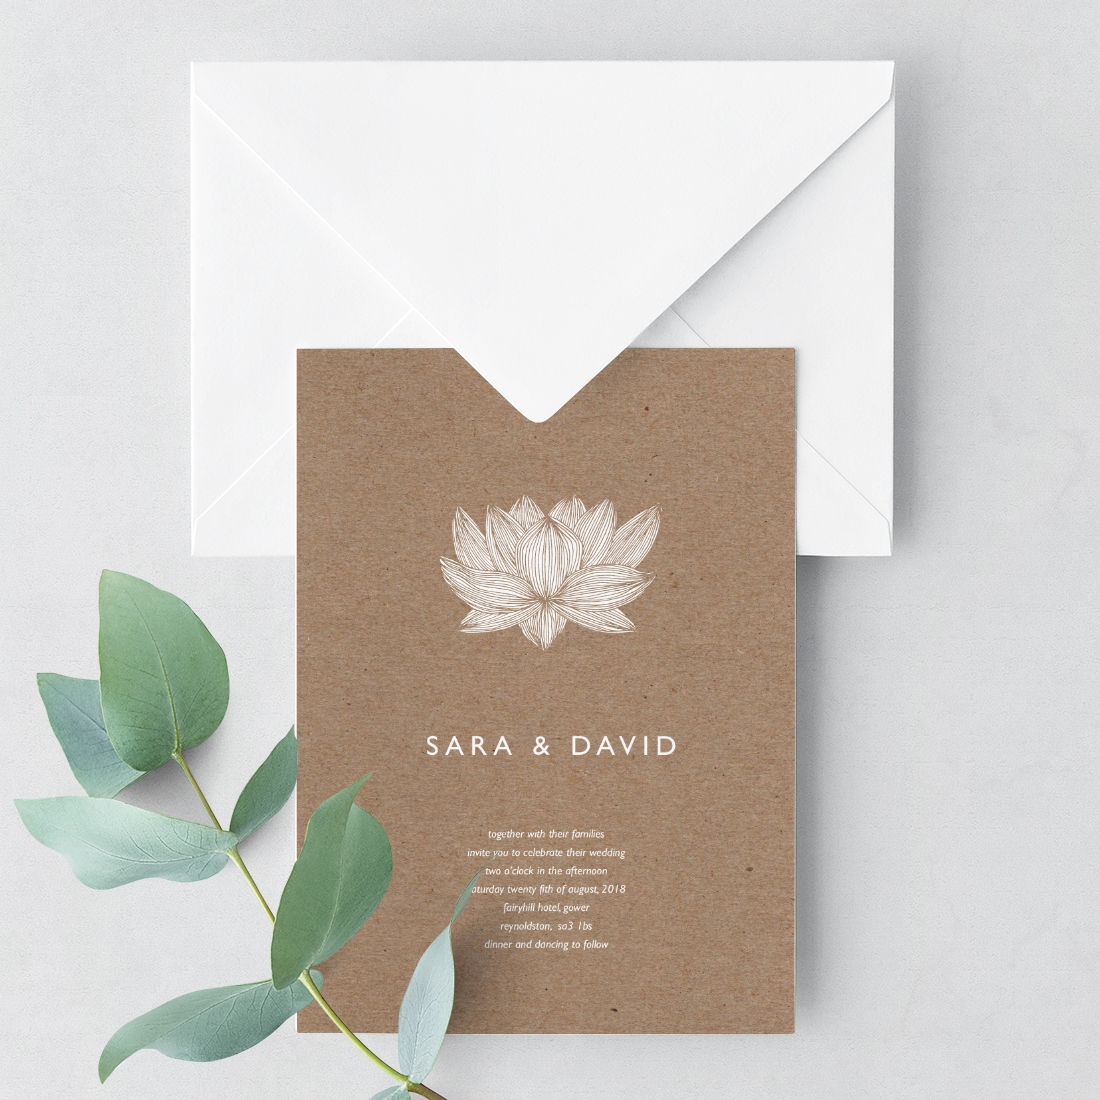 Invitation Card and Envelope with eucalyptus.jpg